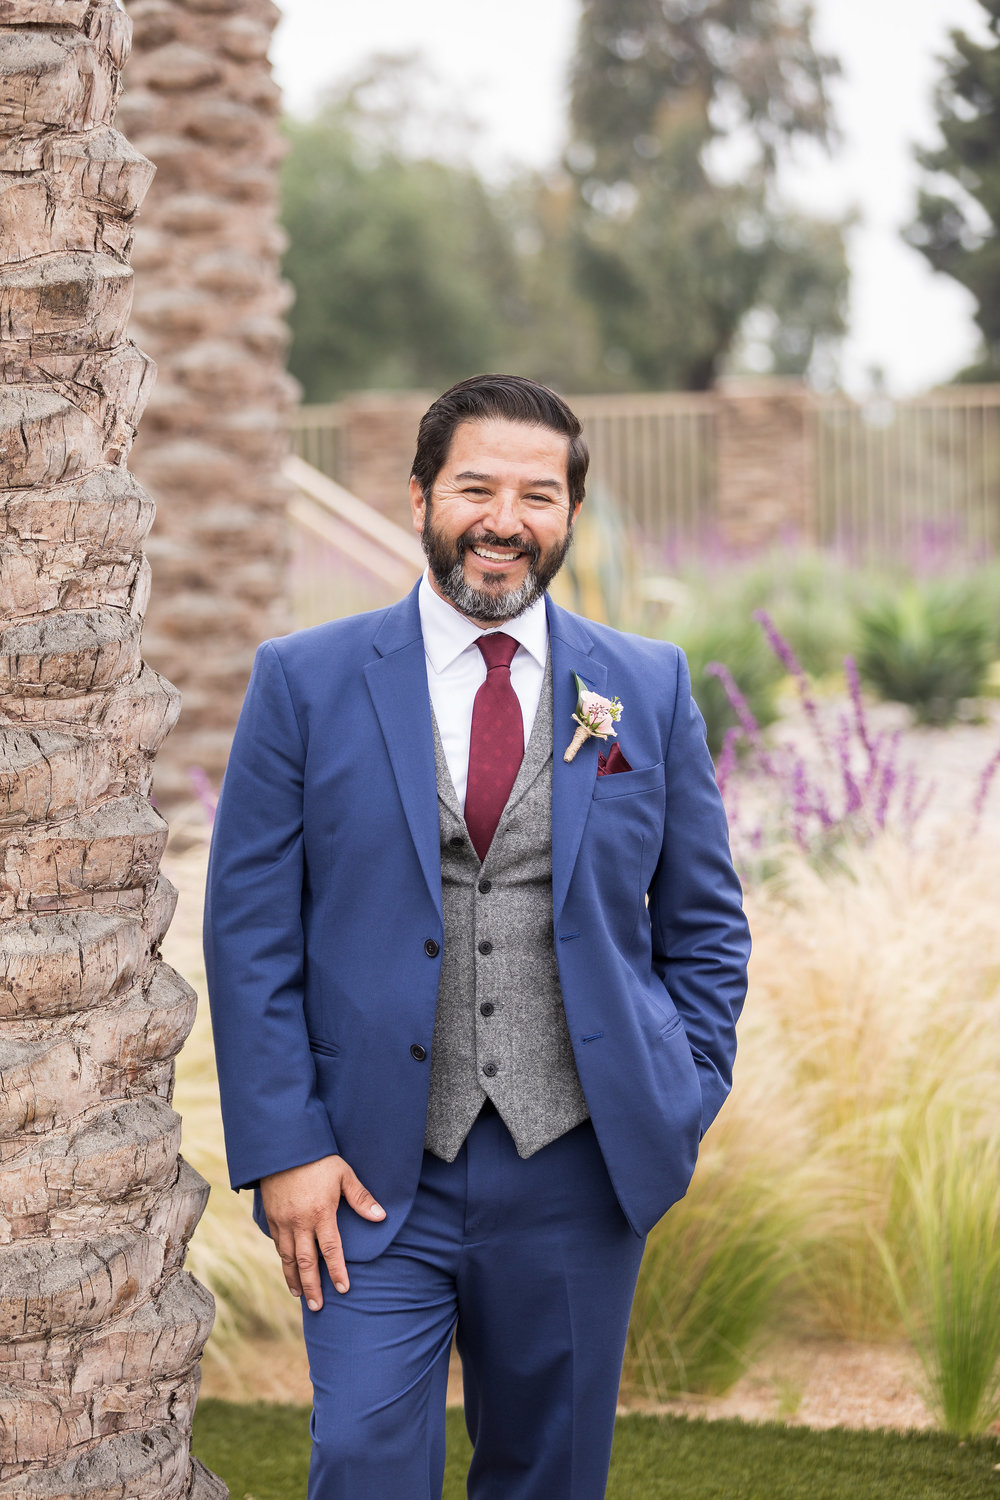 Photo of the handsome groom smiling next to a palm tree in his blue 2 piece wedding suit.jpg